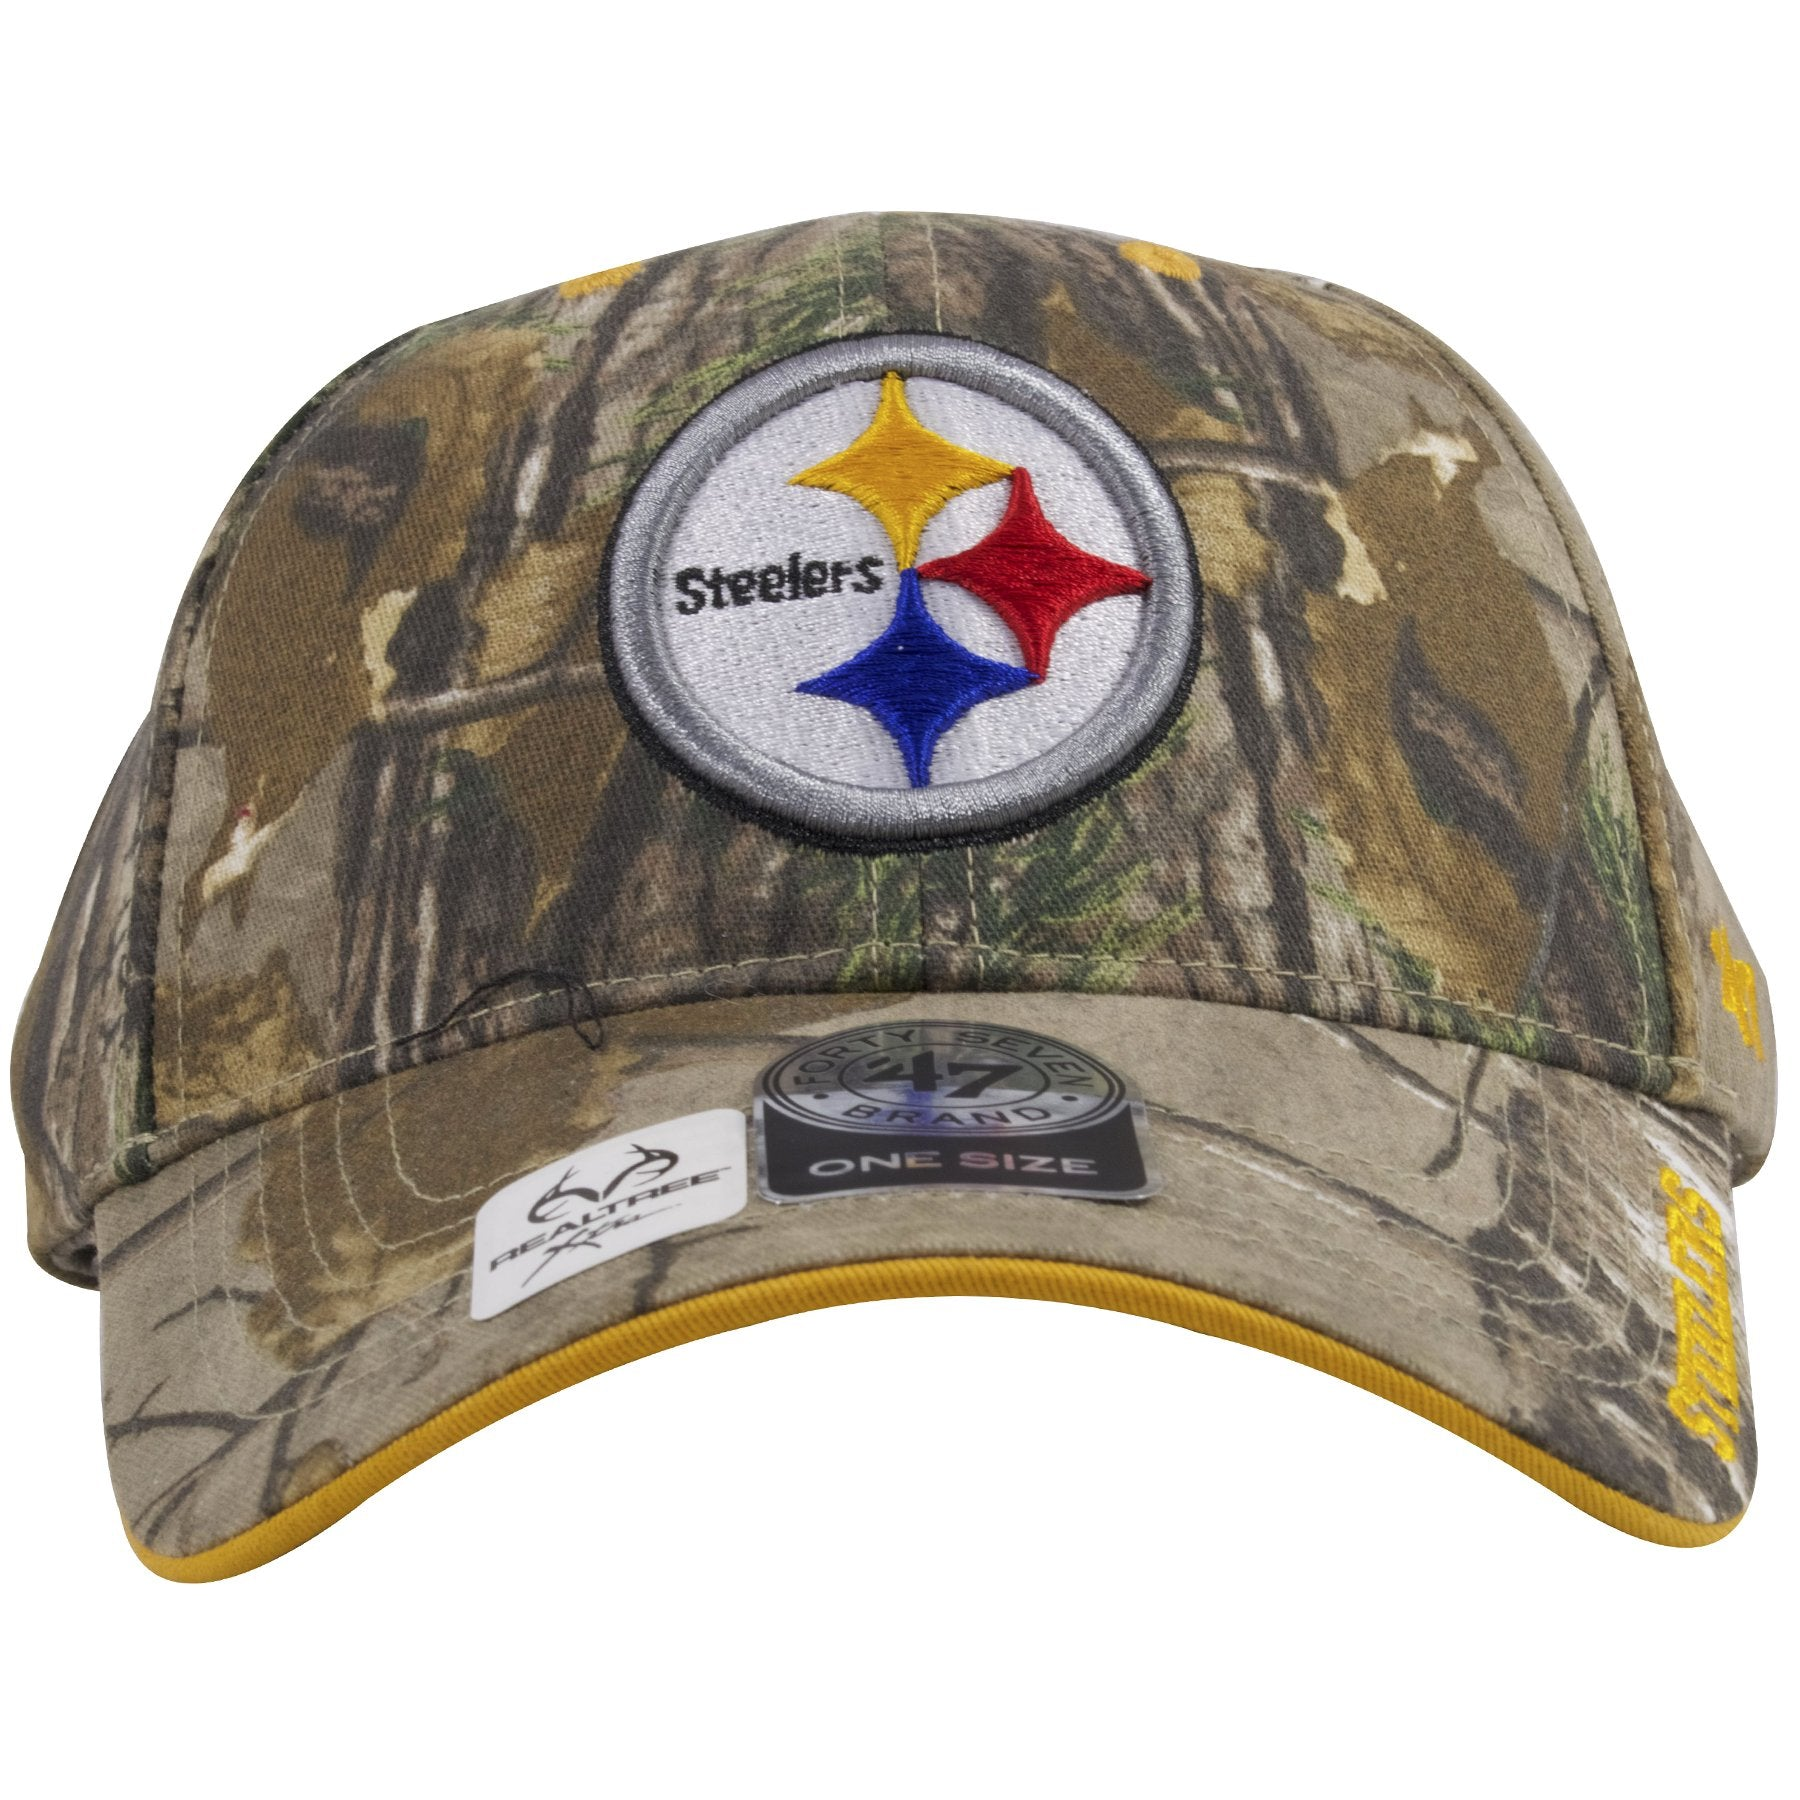 bfaa5930986de9 The front of this Pittsburgh Steelers Realtree dad hat has the Steelers  logo heavily embroidered in